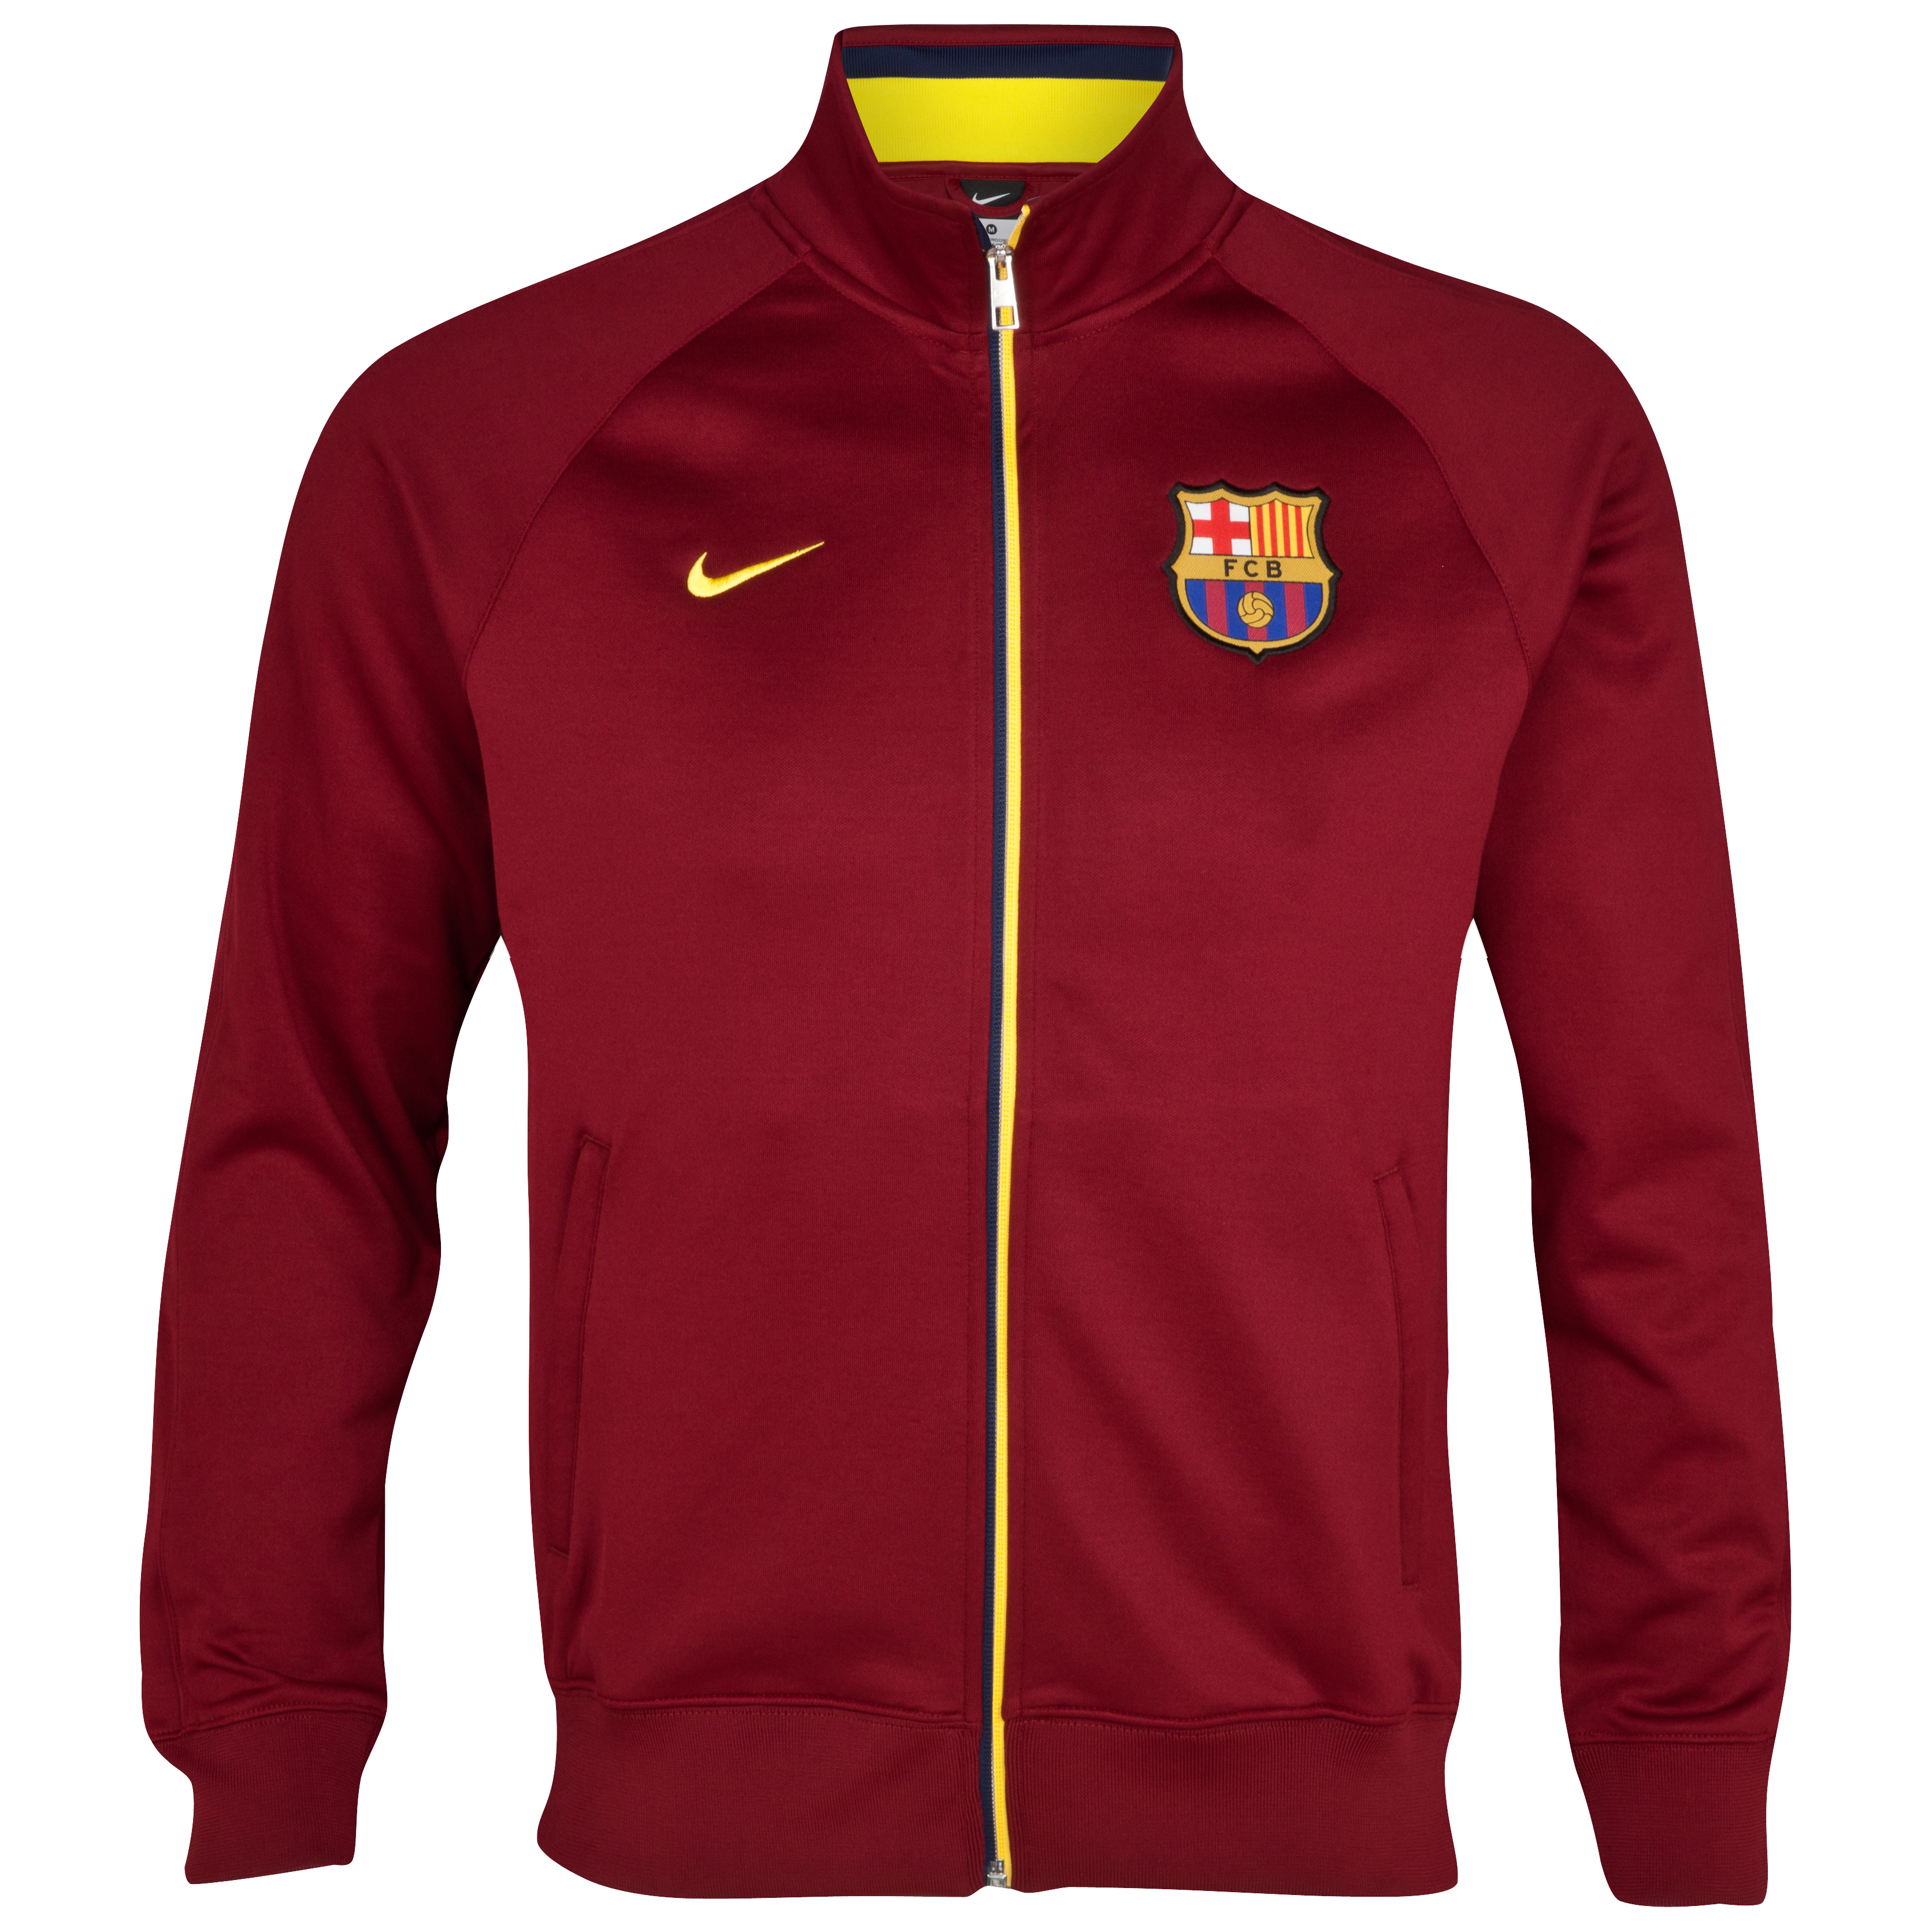 Barcelona Core Trainer Jacket - Team Red/Tour Yellow